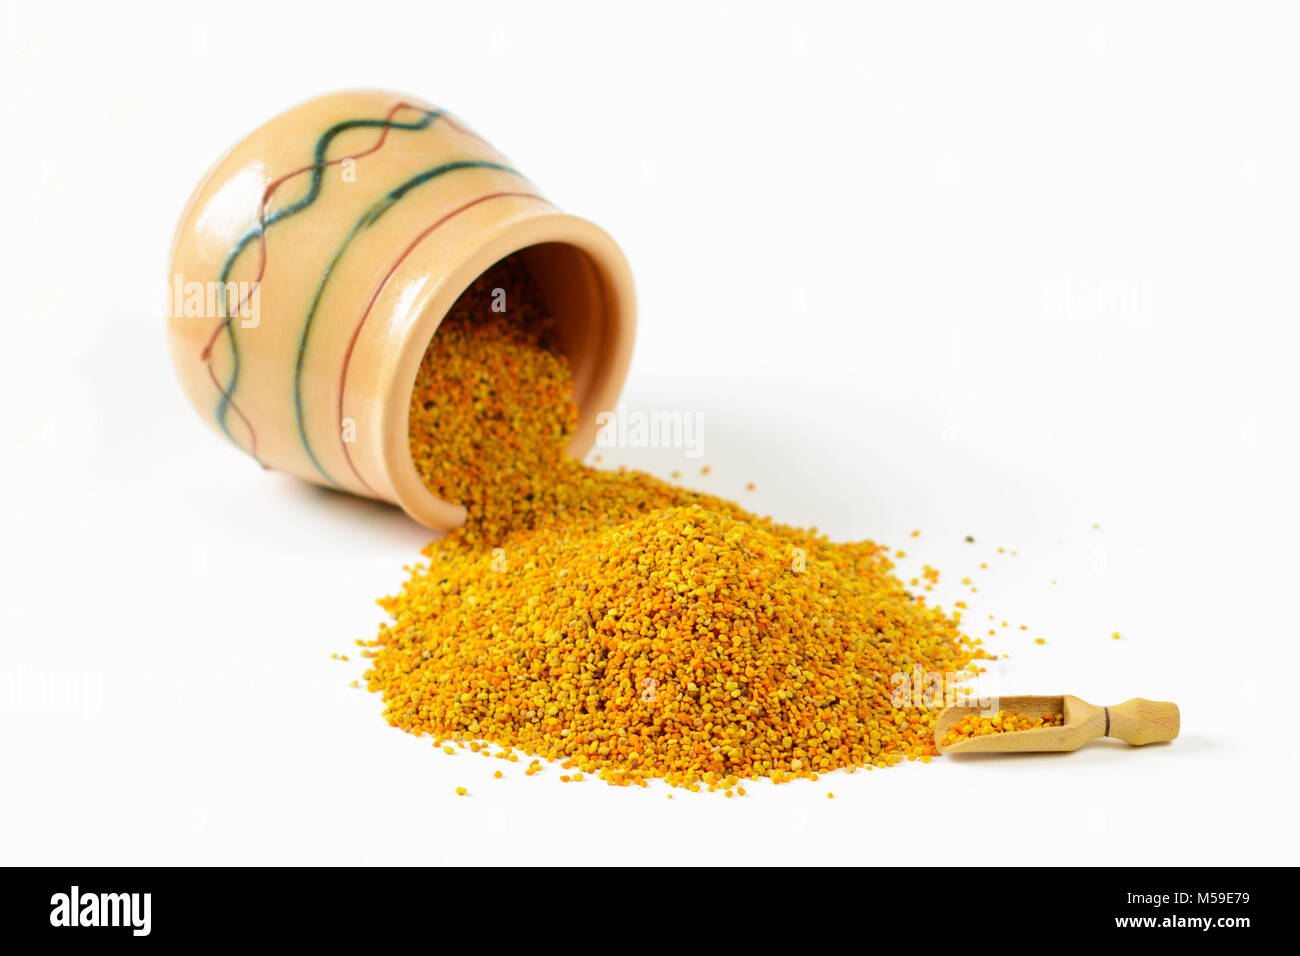 Heap of bee pollen granules, a wooden scoop and an overturned glazed clay pot full of pollen. Selective focus. Closeup. Stock Photo